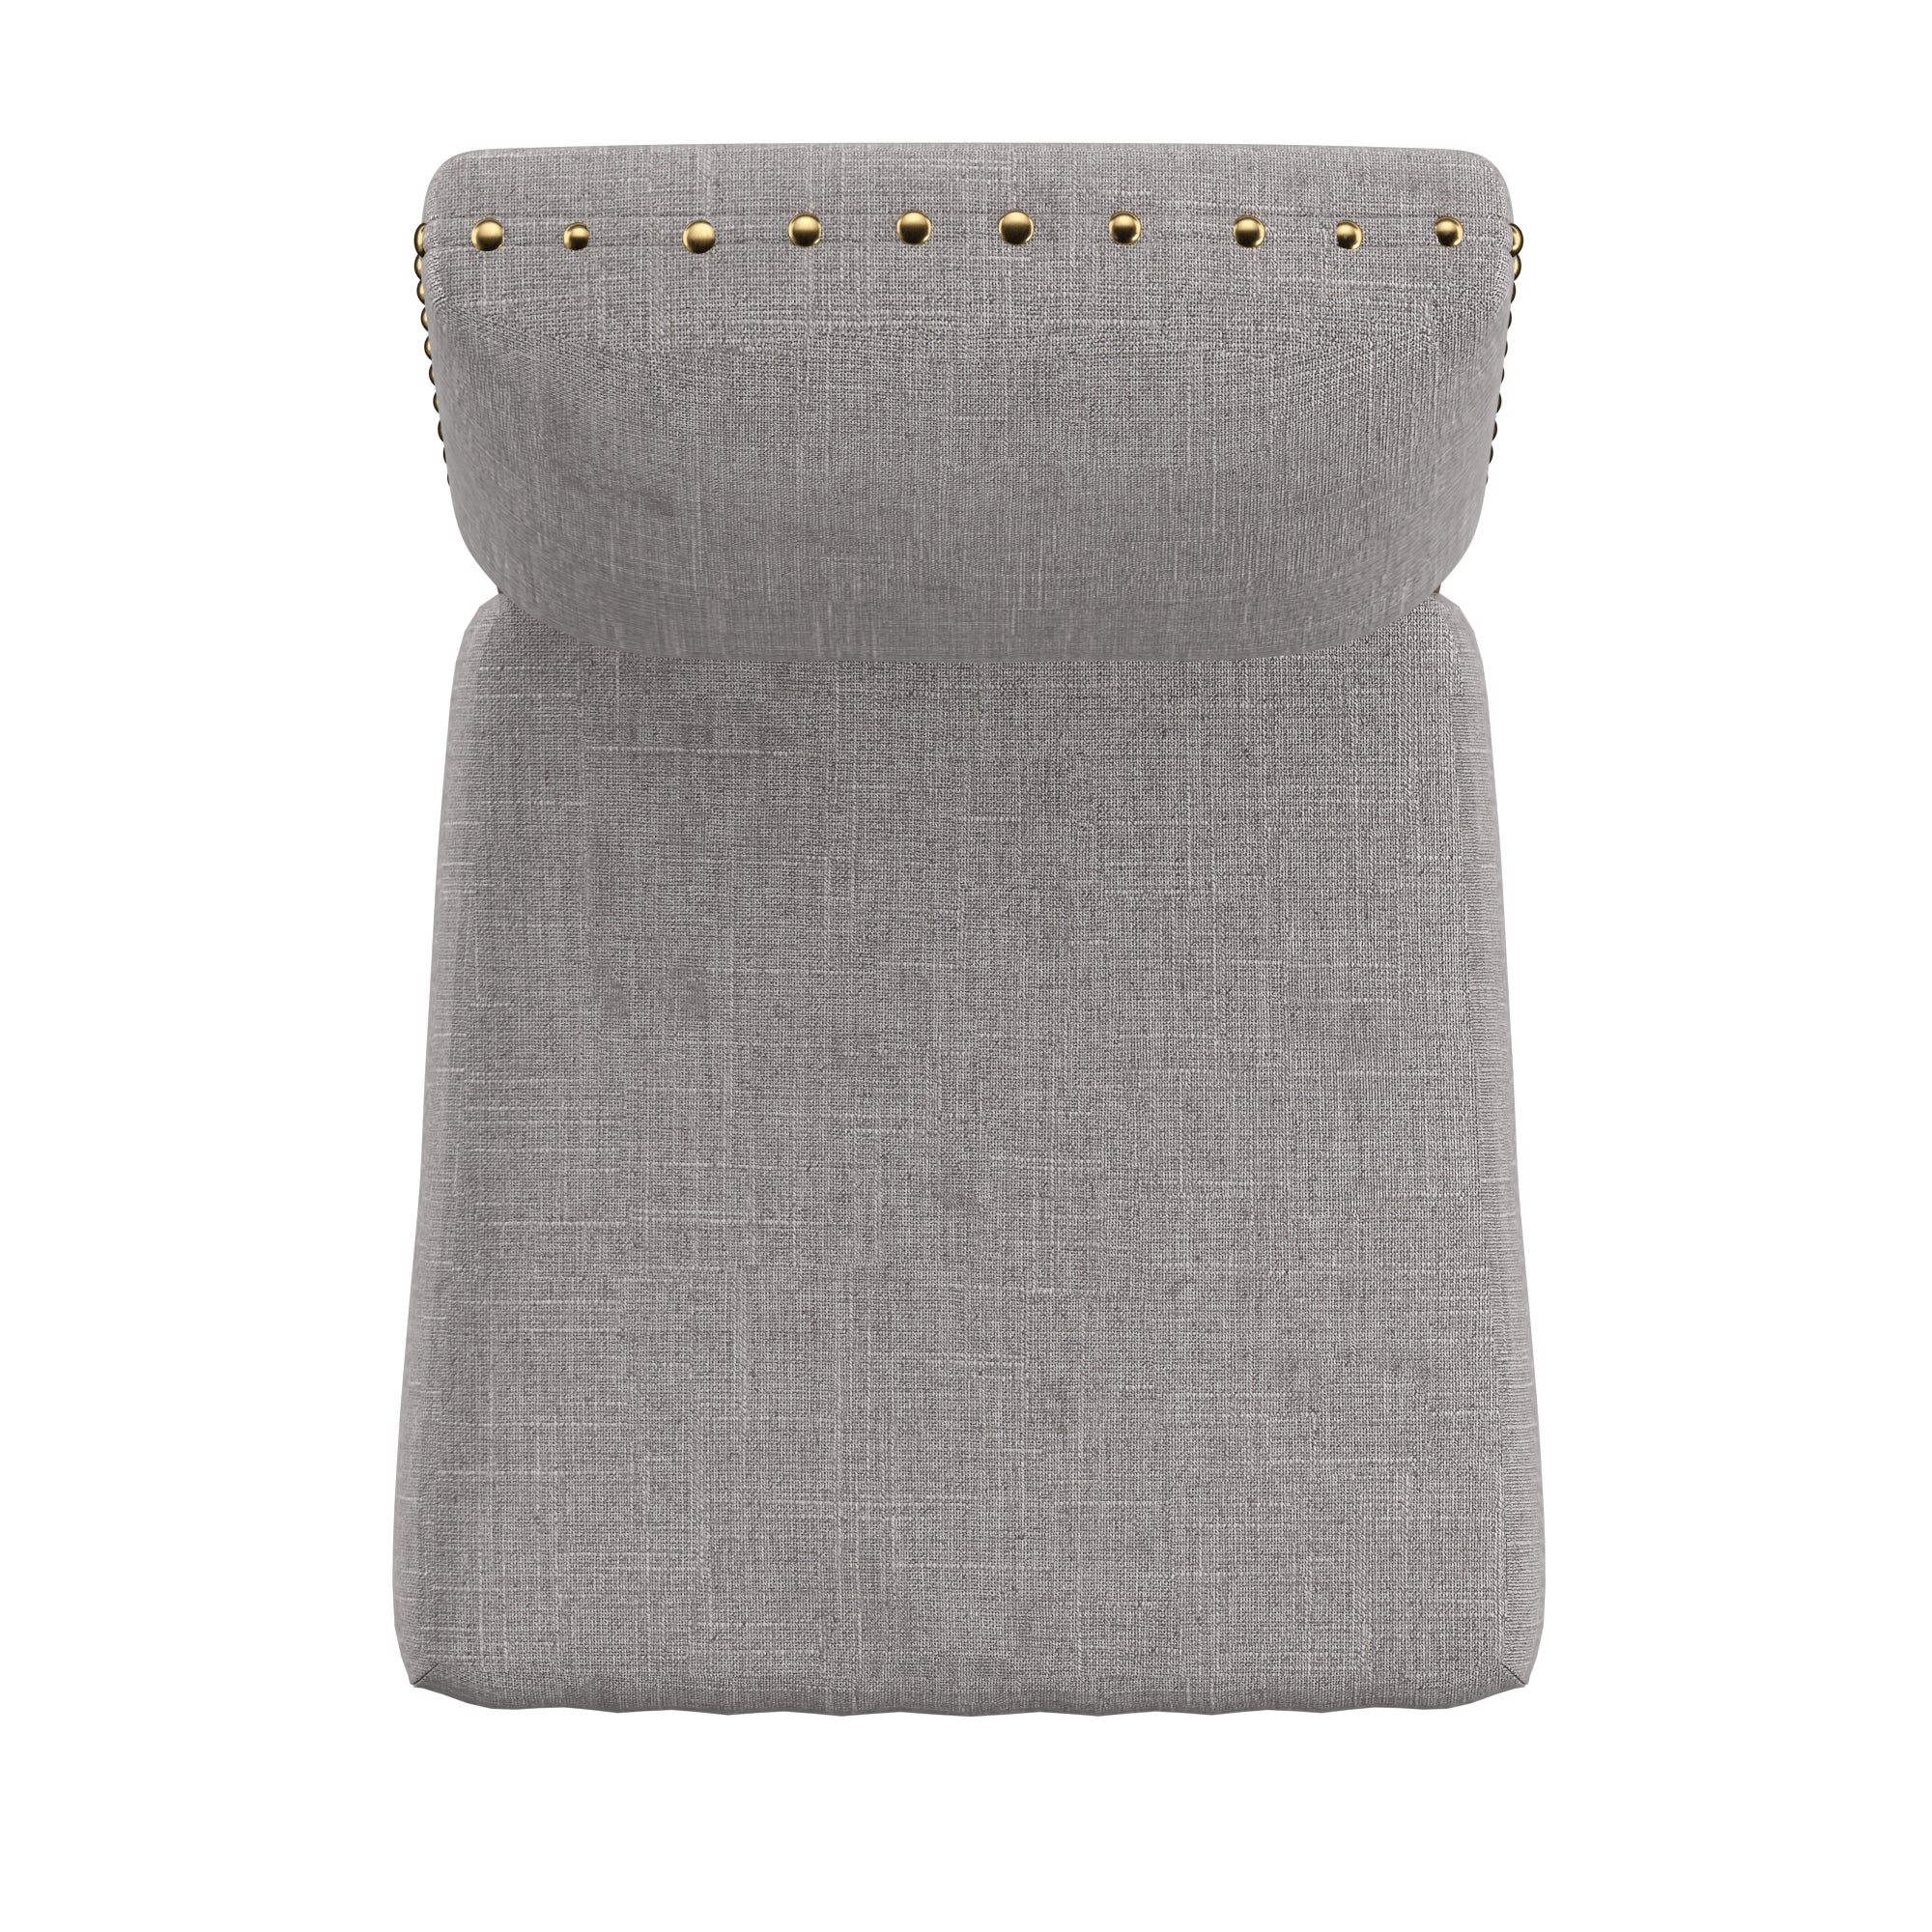 Nailhead Linen Upholstered Dining Chairs (Set of 2) - Grey Linen